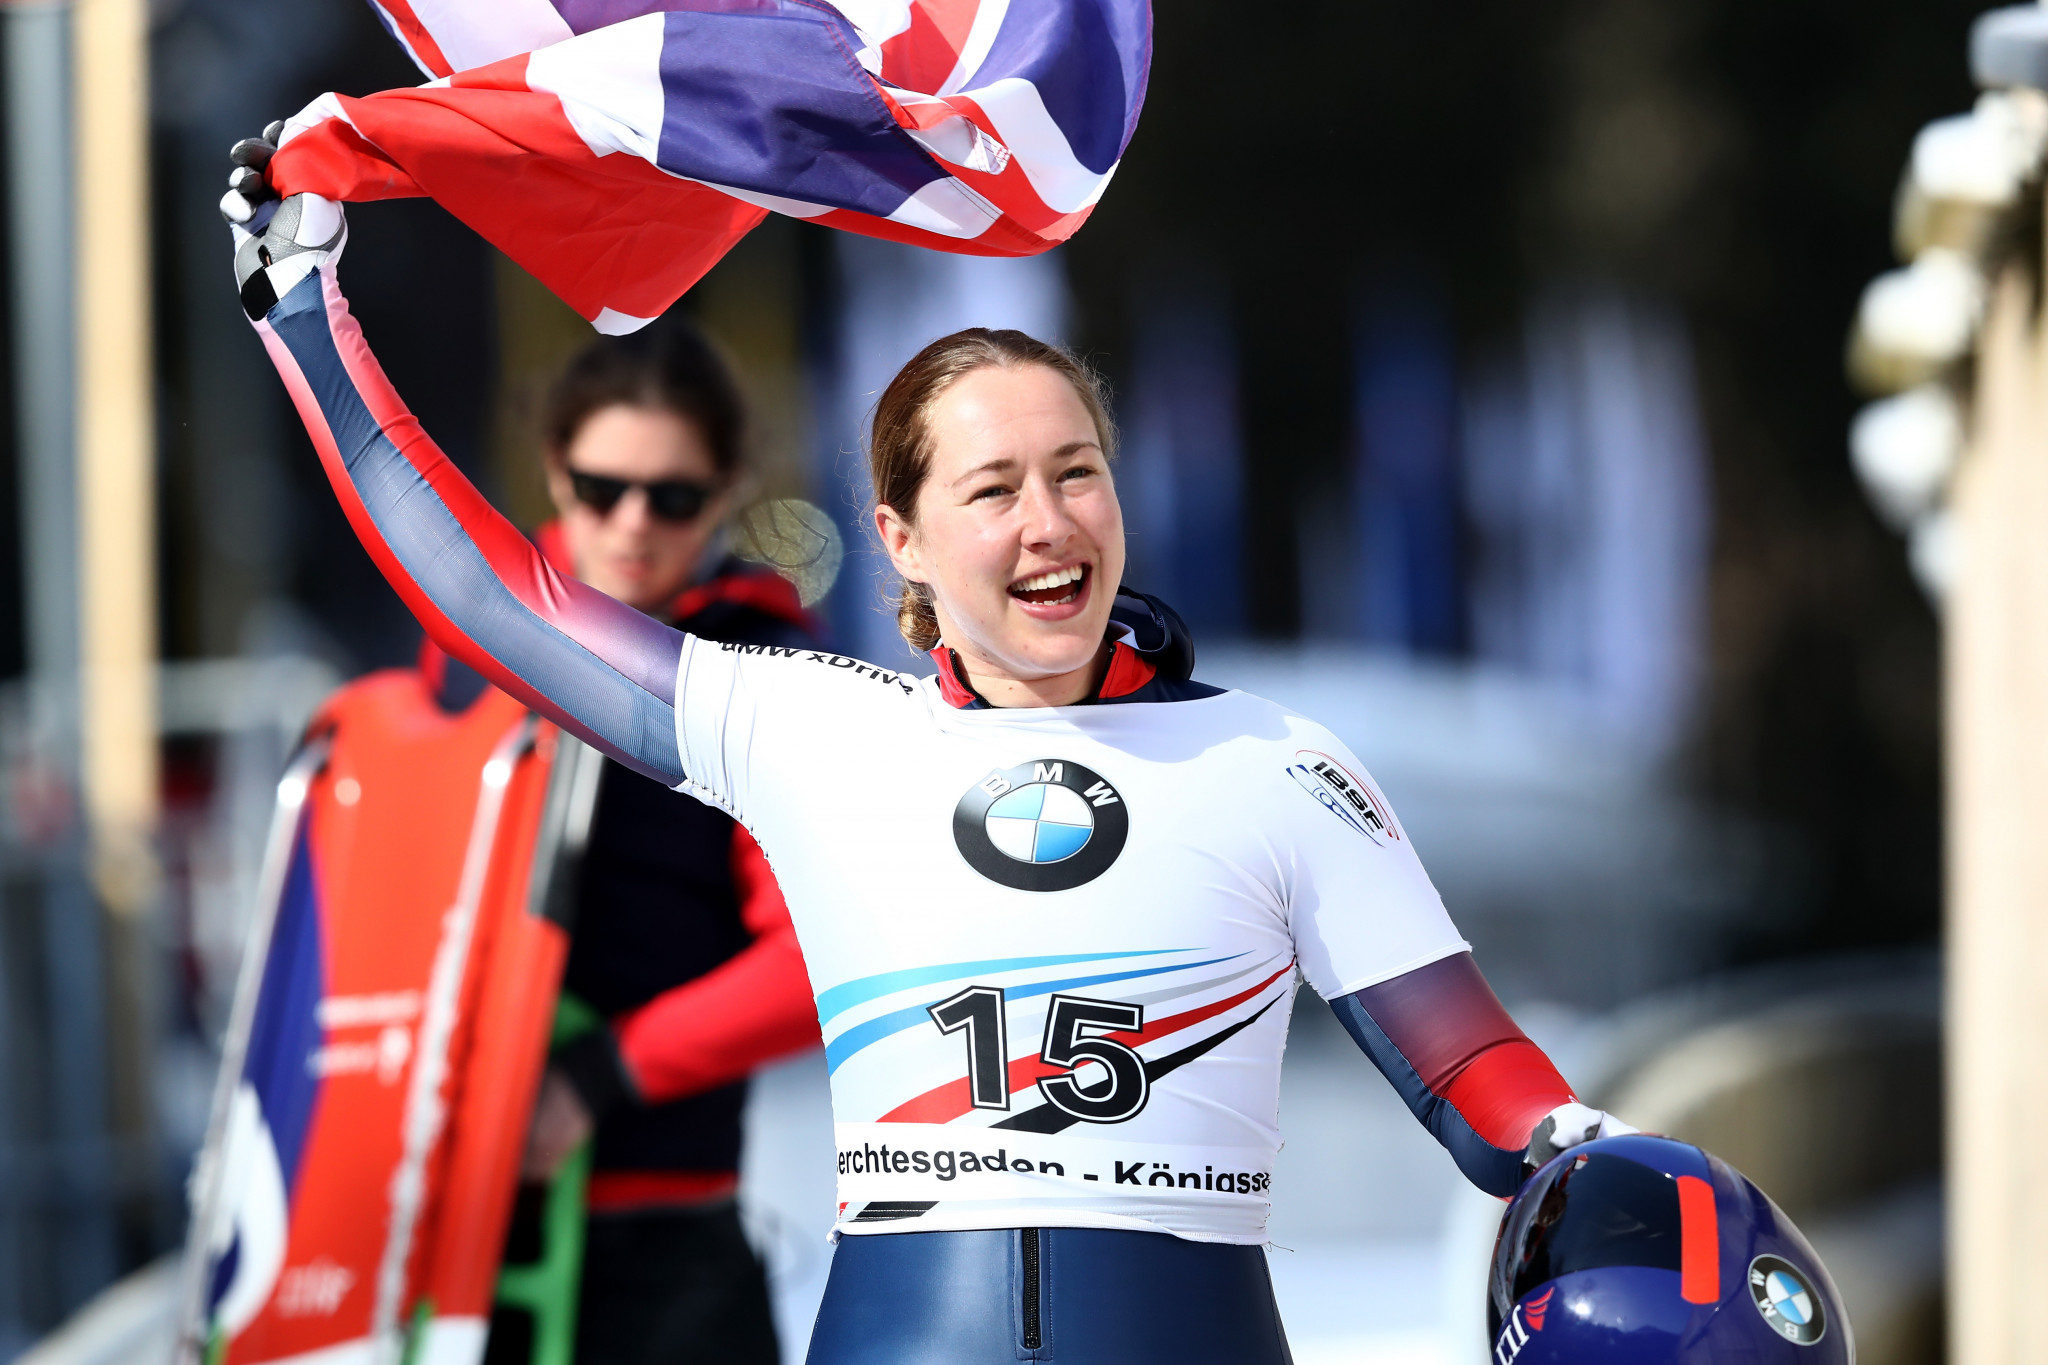 Olympic skeleton champion slams BBSA over women's funding cuts